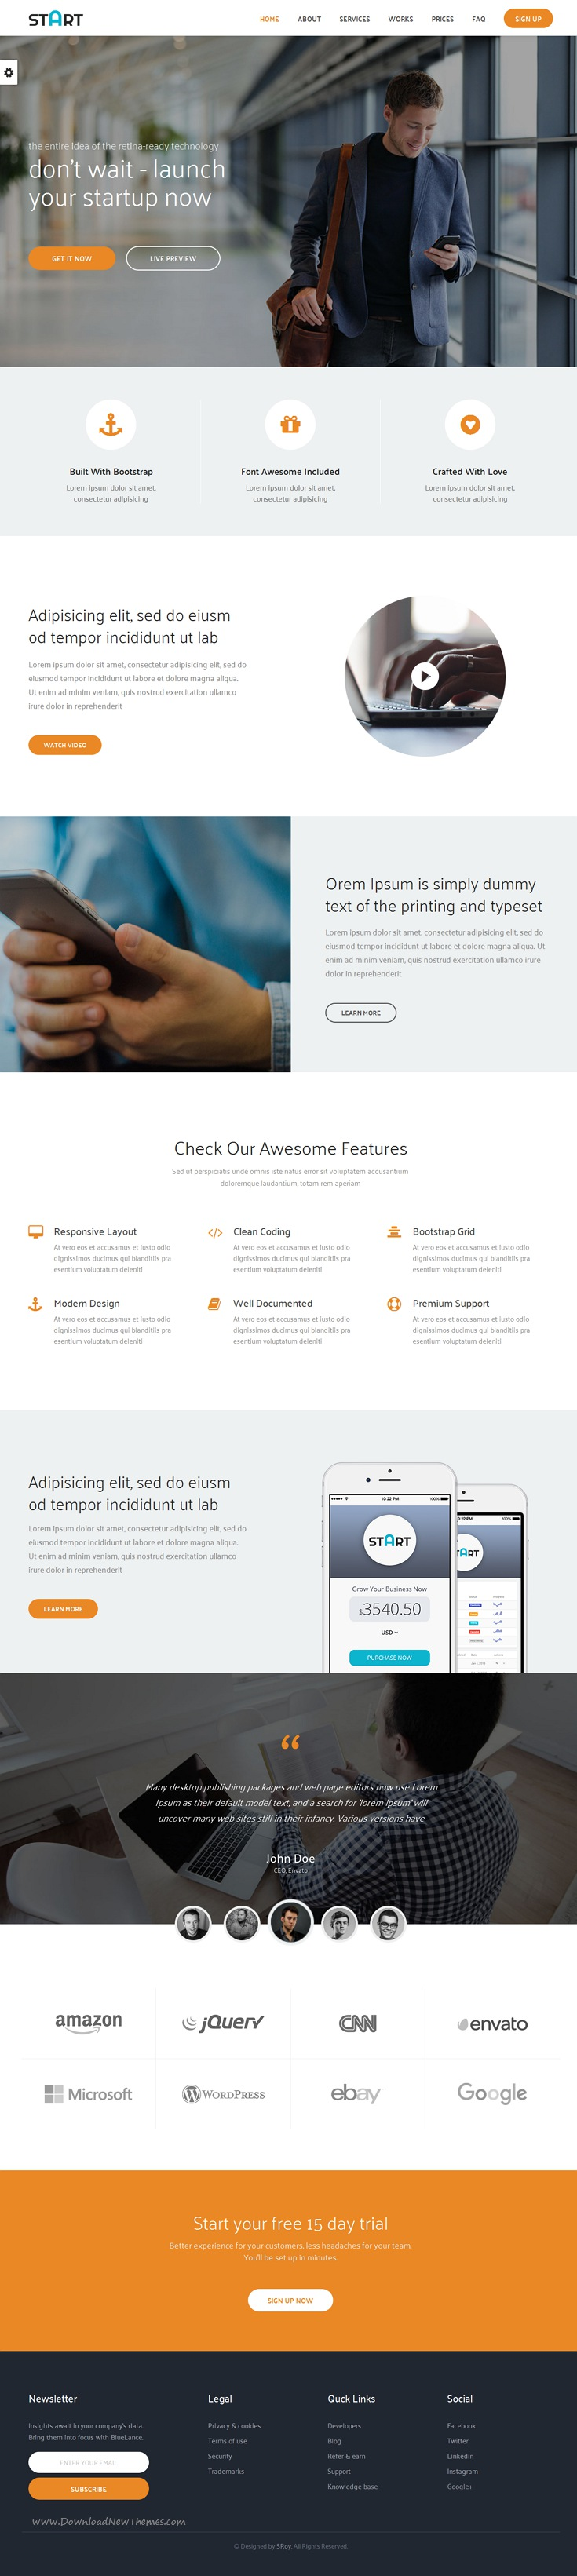 Start plete landing page bootstrap template for corporate or